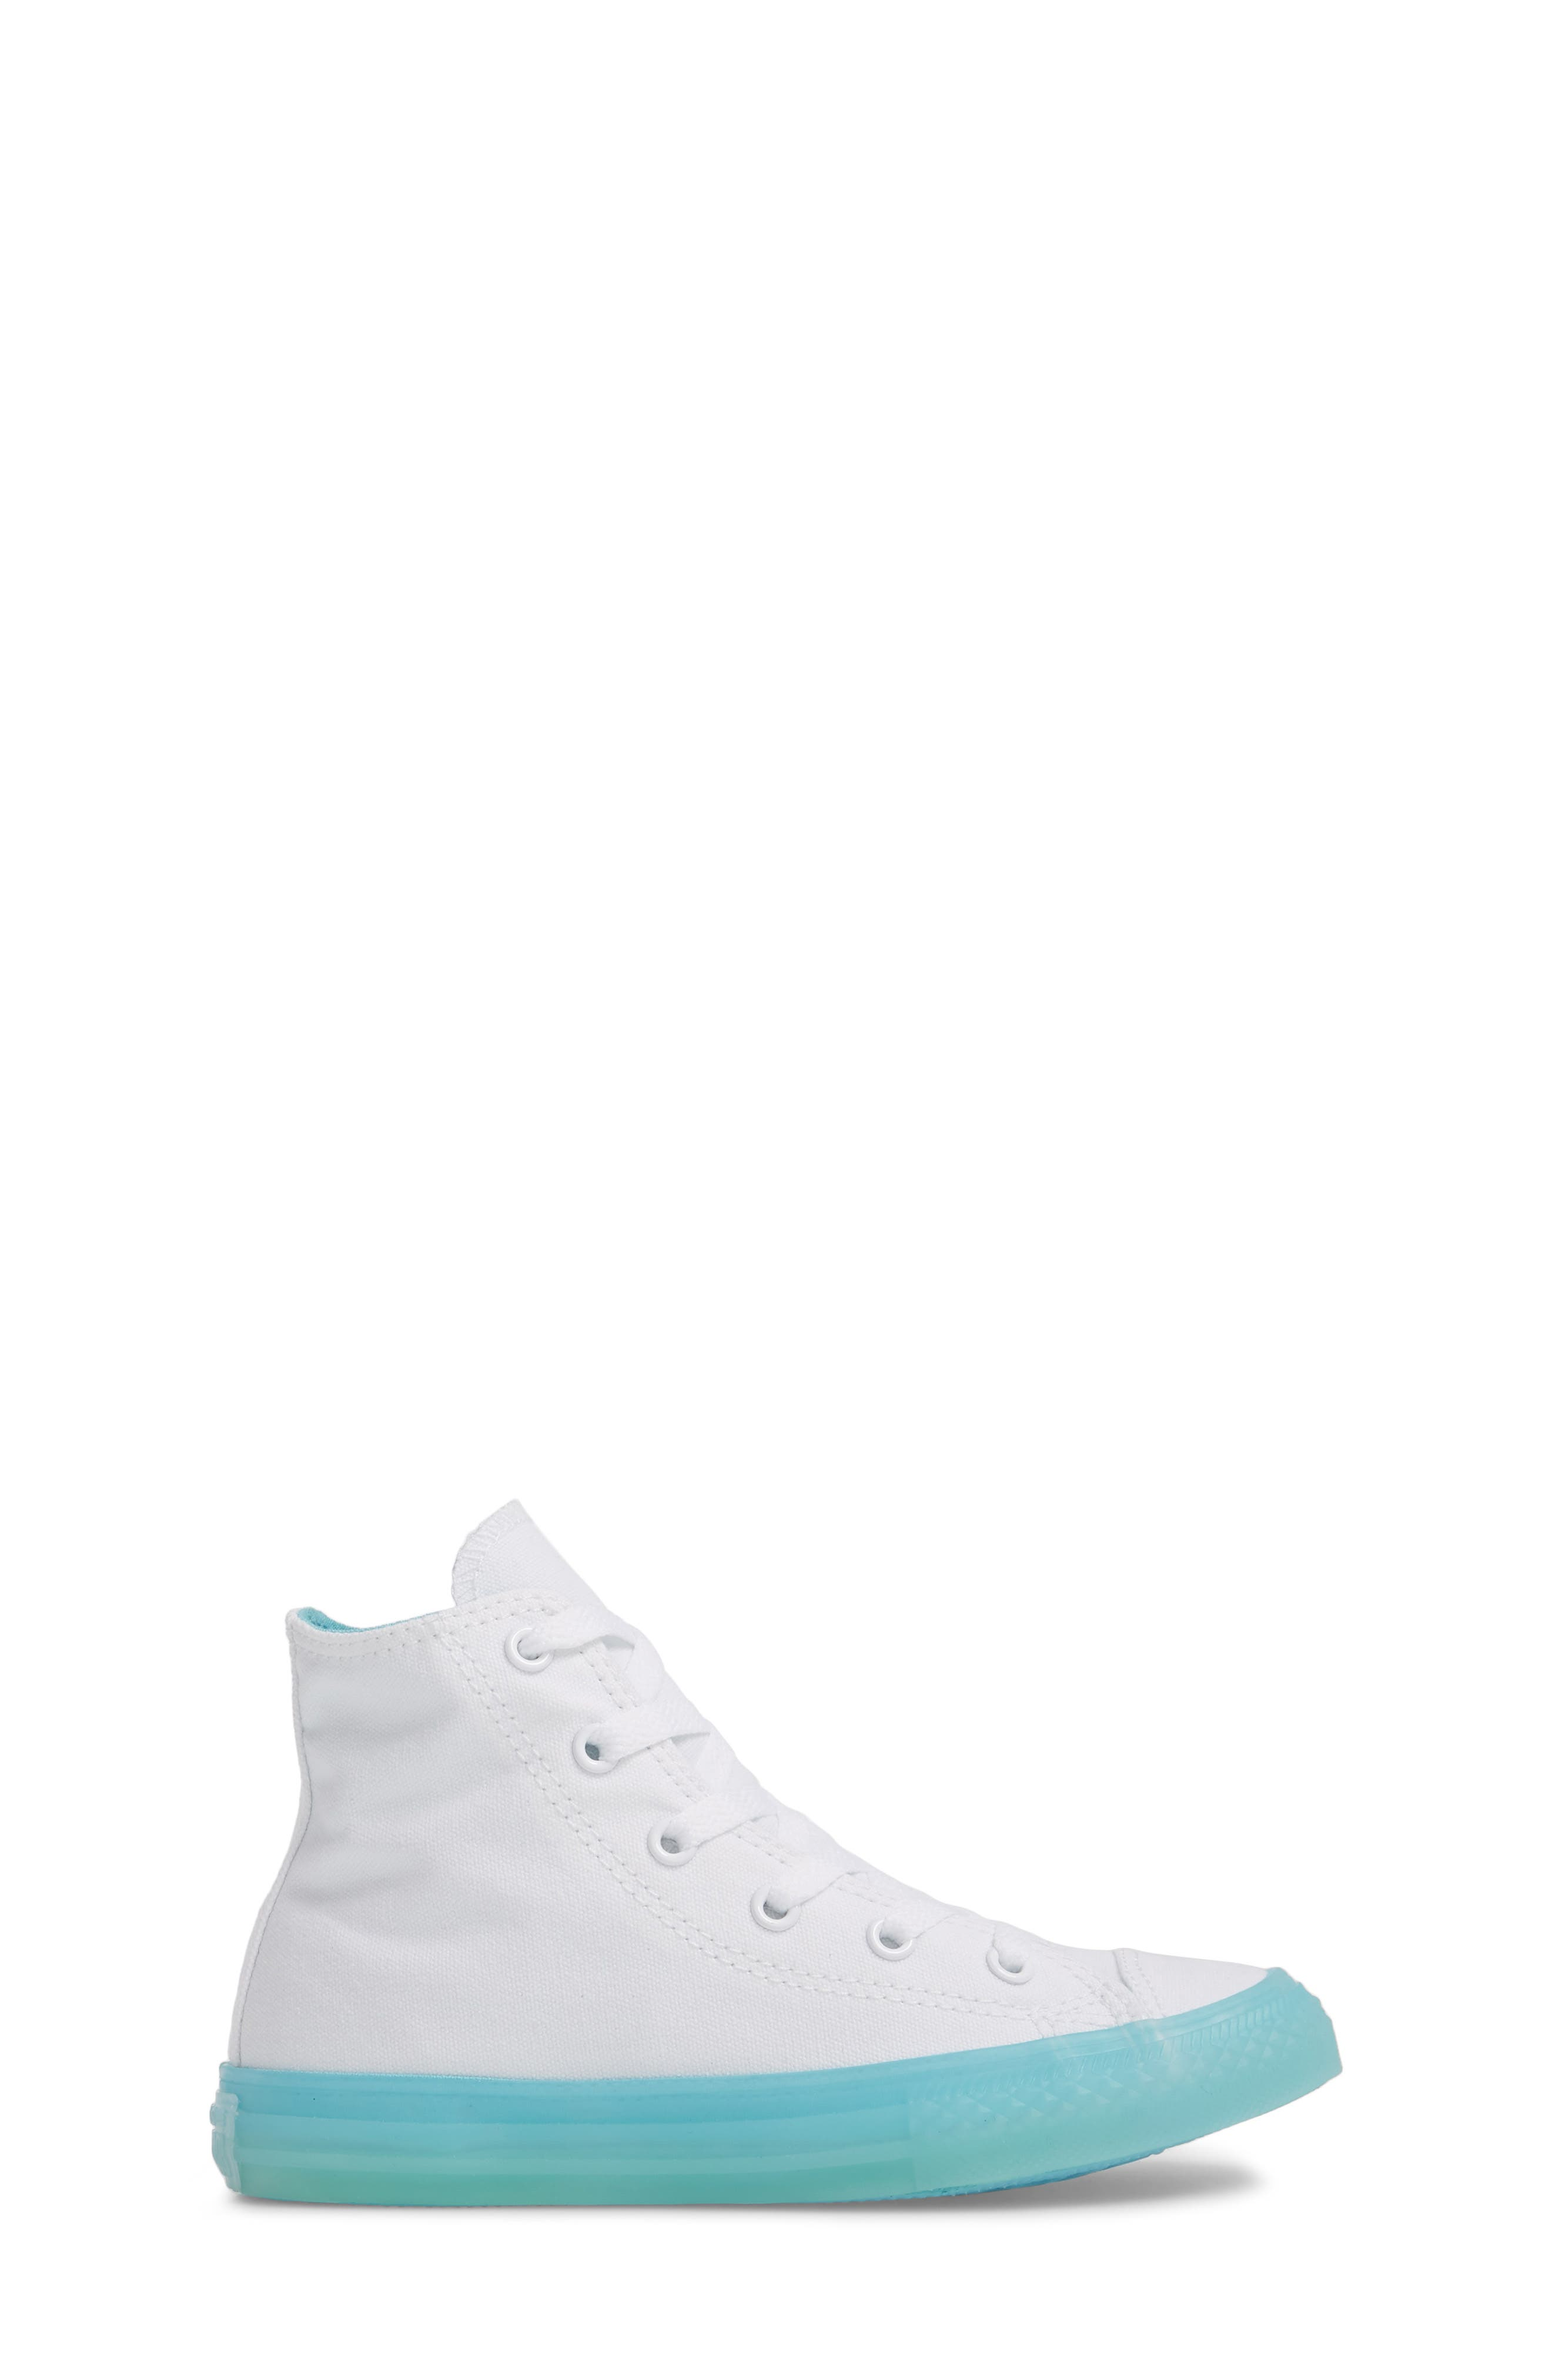 Chuck Taylor<sup>®</sup> All Star<sup>®</sup> Jelly High Top Sneaker,                             Alternate thumbnail 3, color,                             405